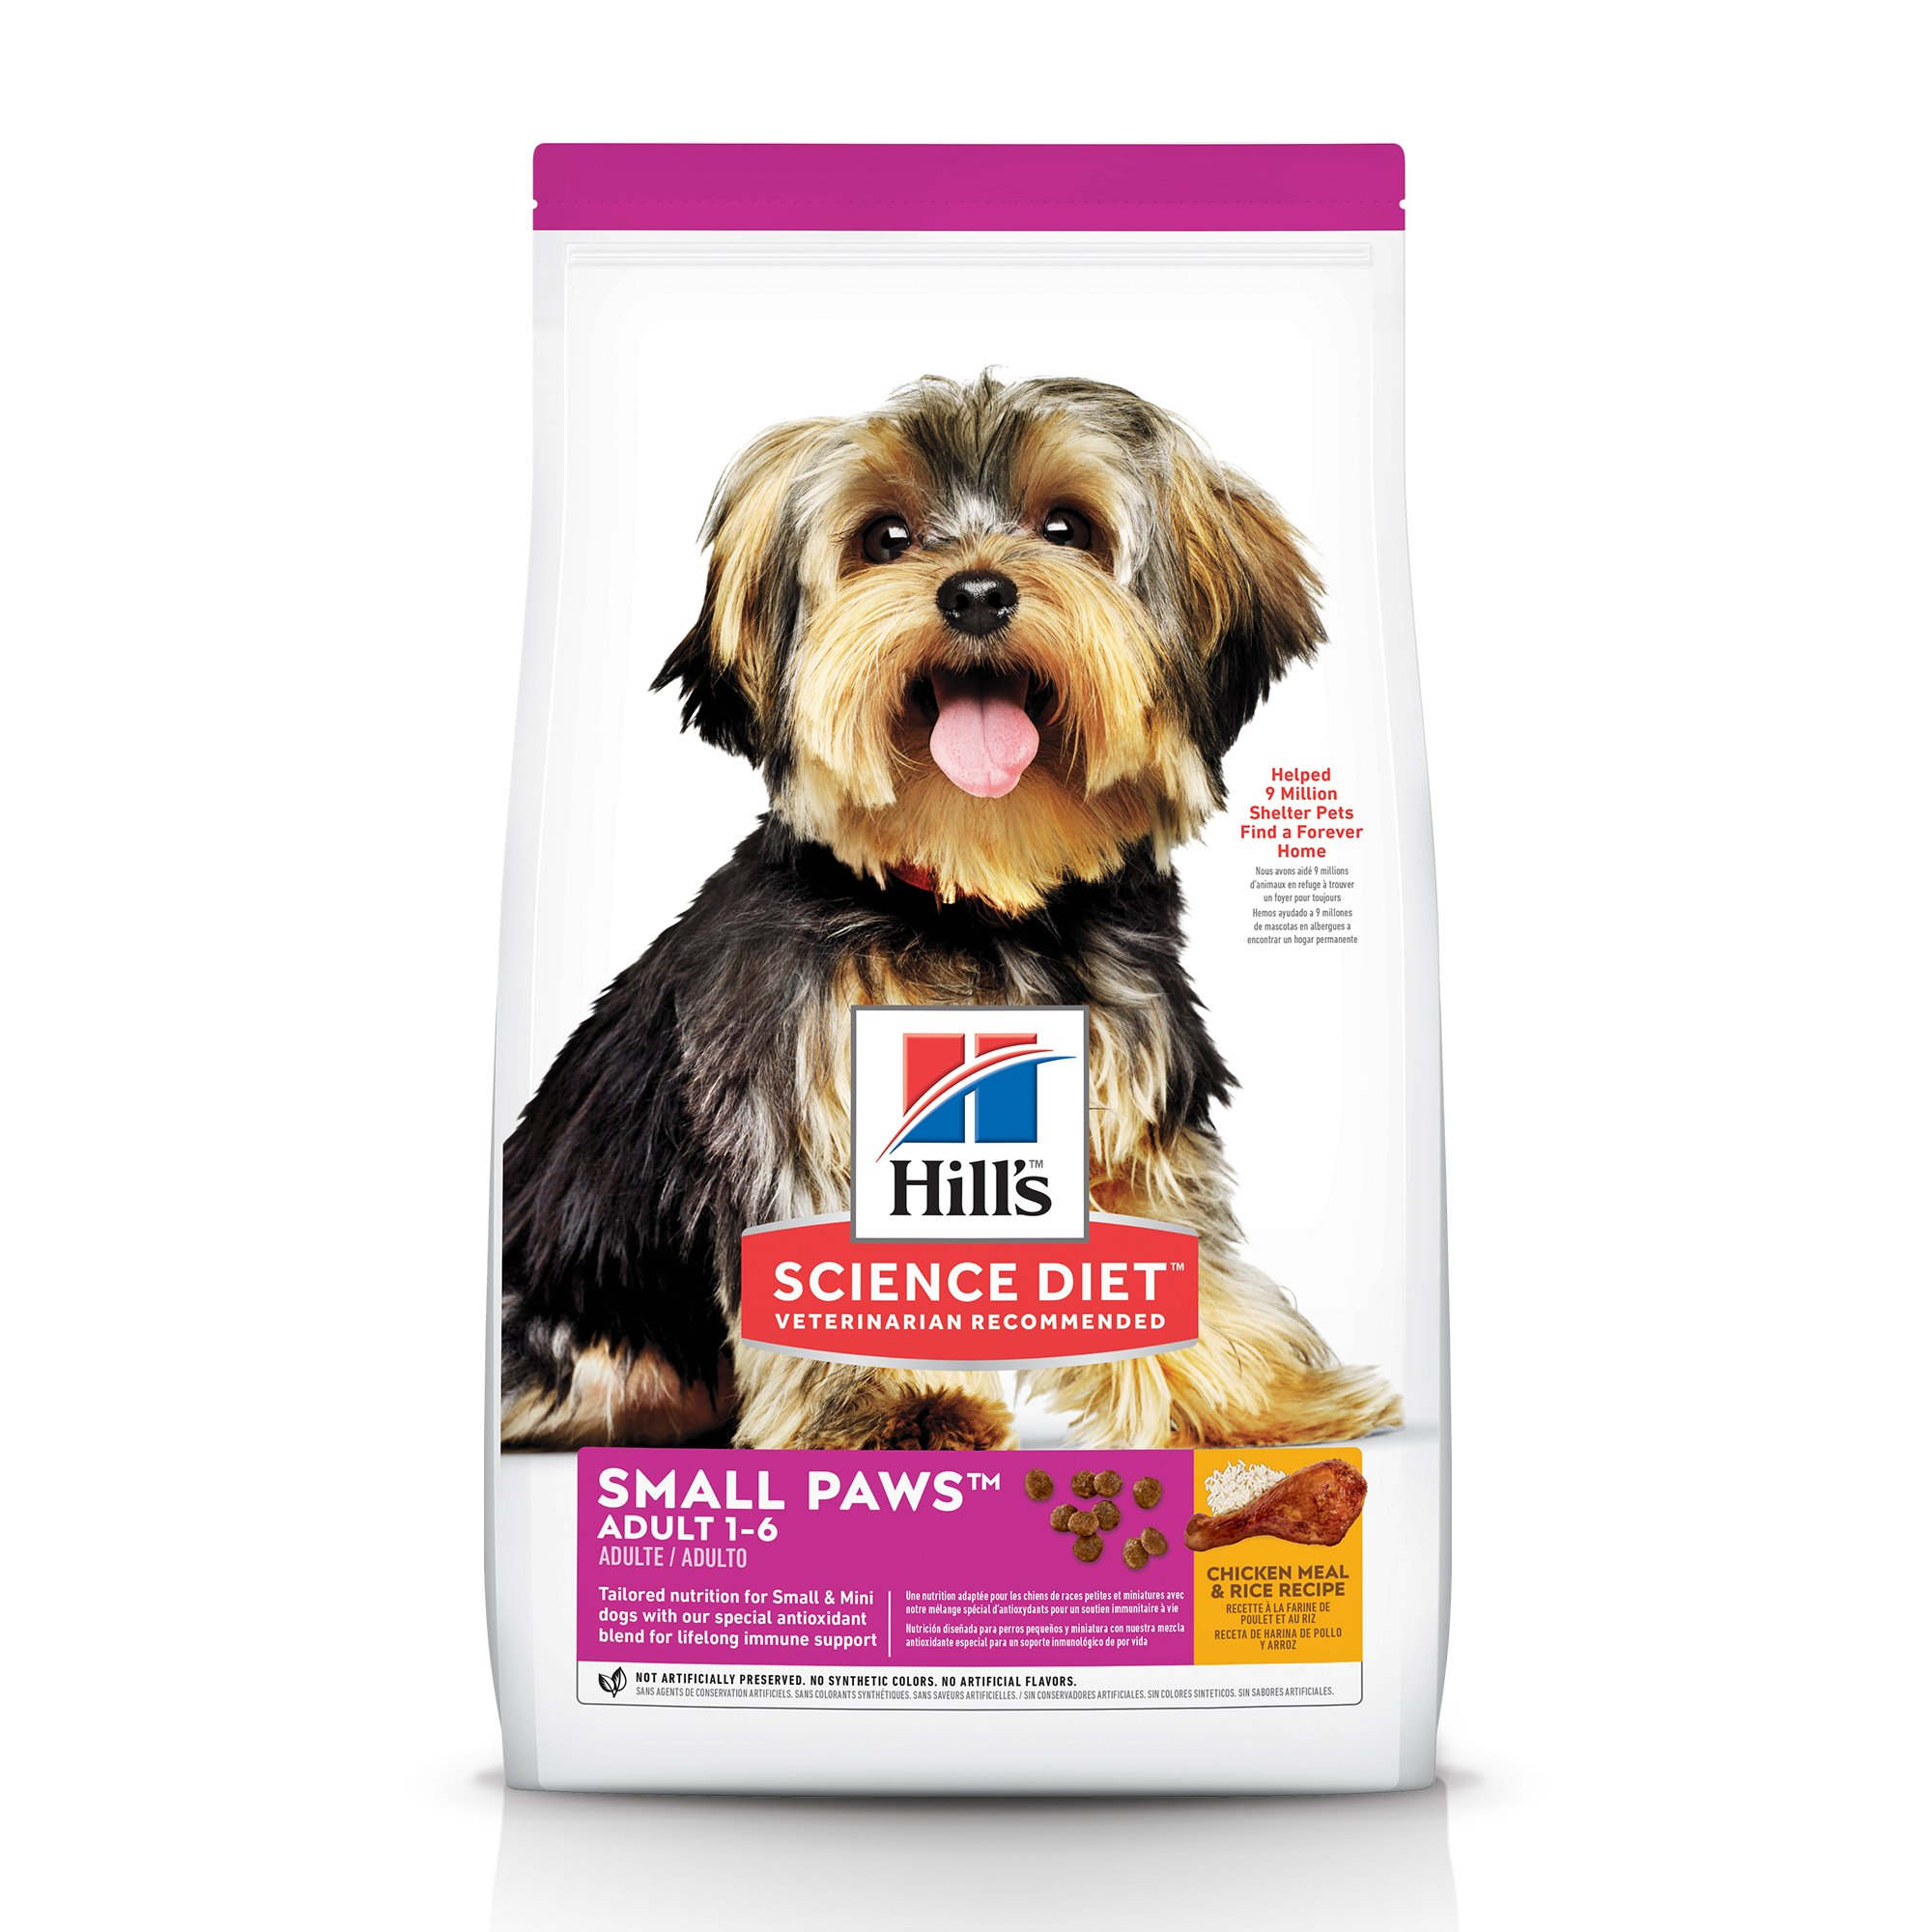 Hill's Science Diet Adult Small Paws Chicken Meal & Rice Recipe Dry Dog Food, 4.5 lbs.